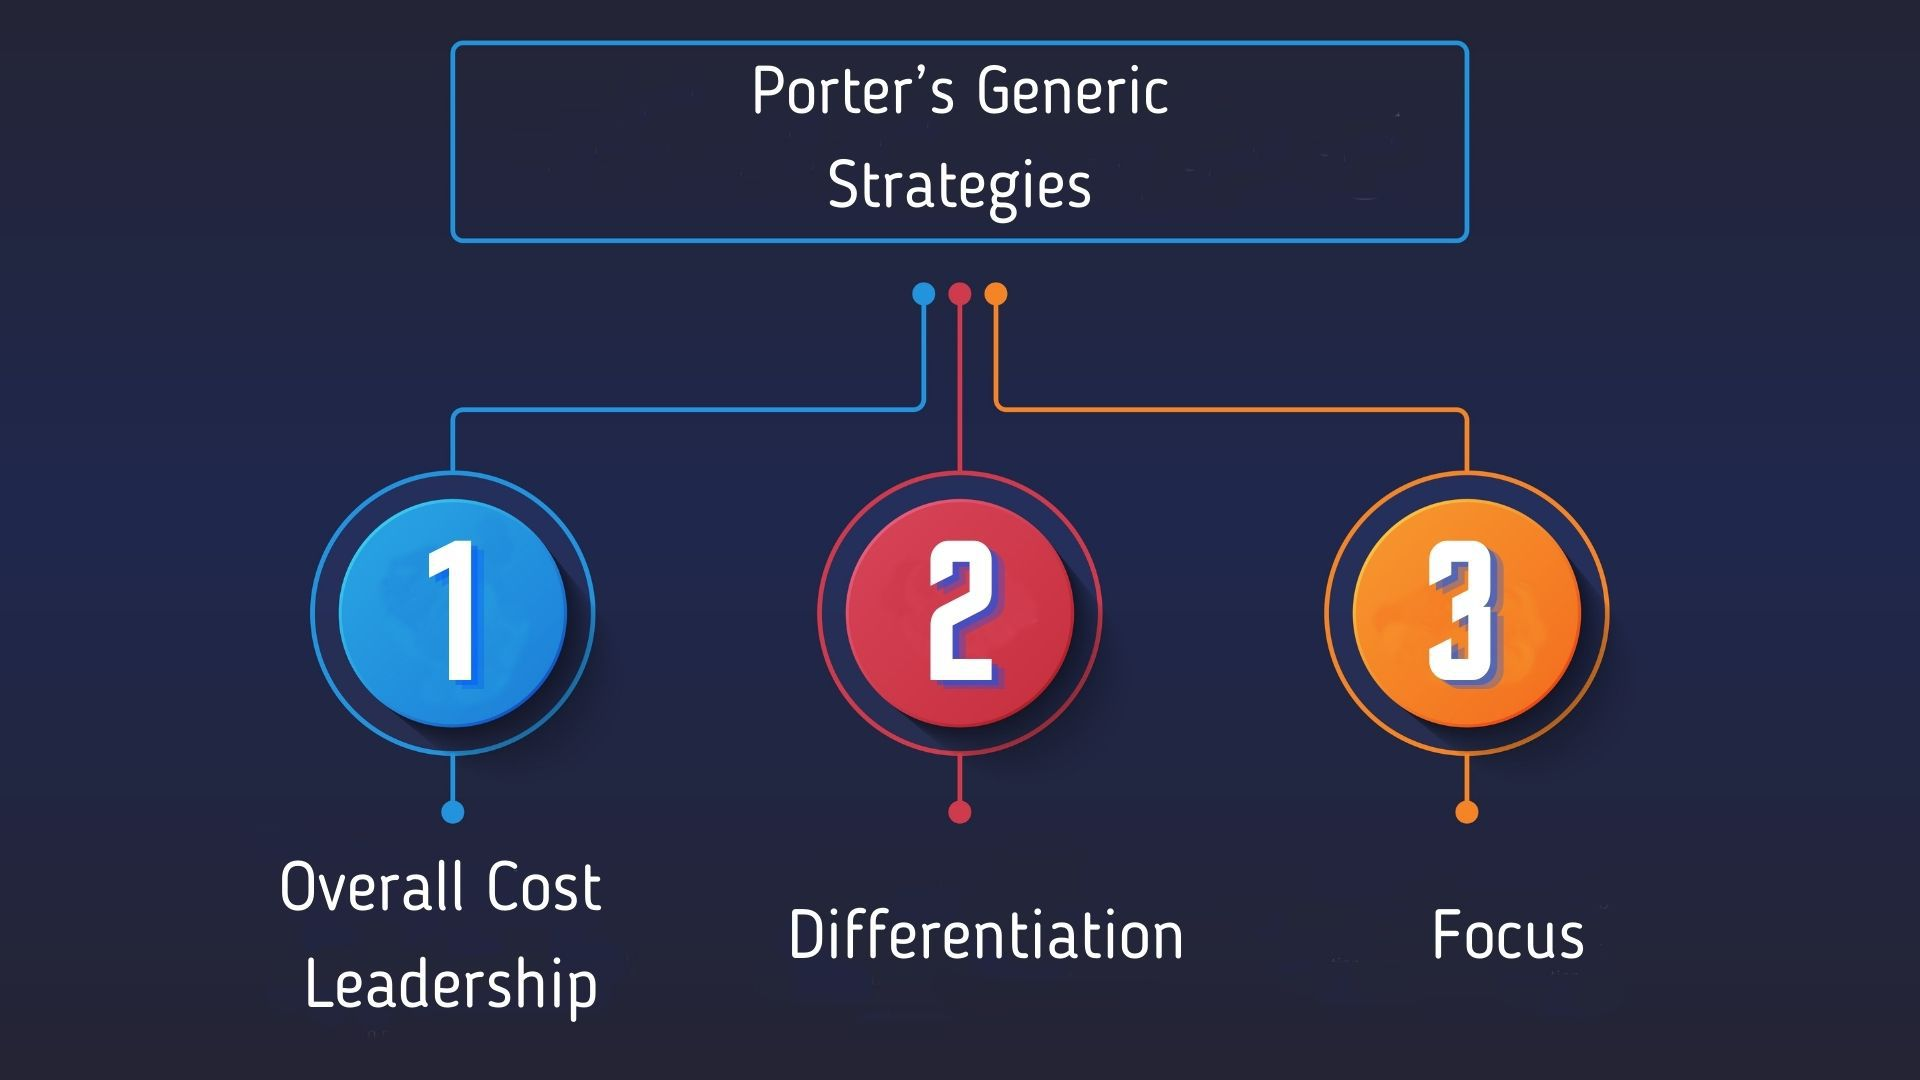 Porter's Generic Strategies role in the strategic plan